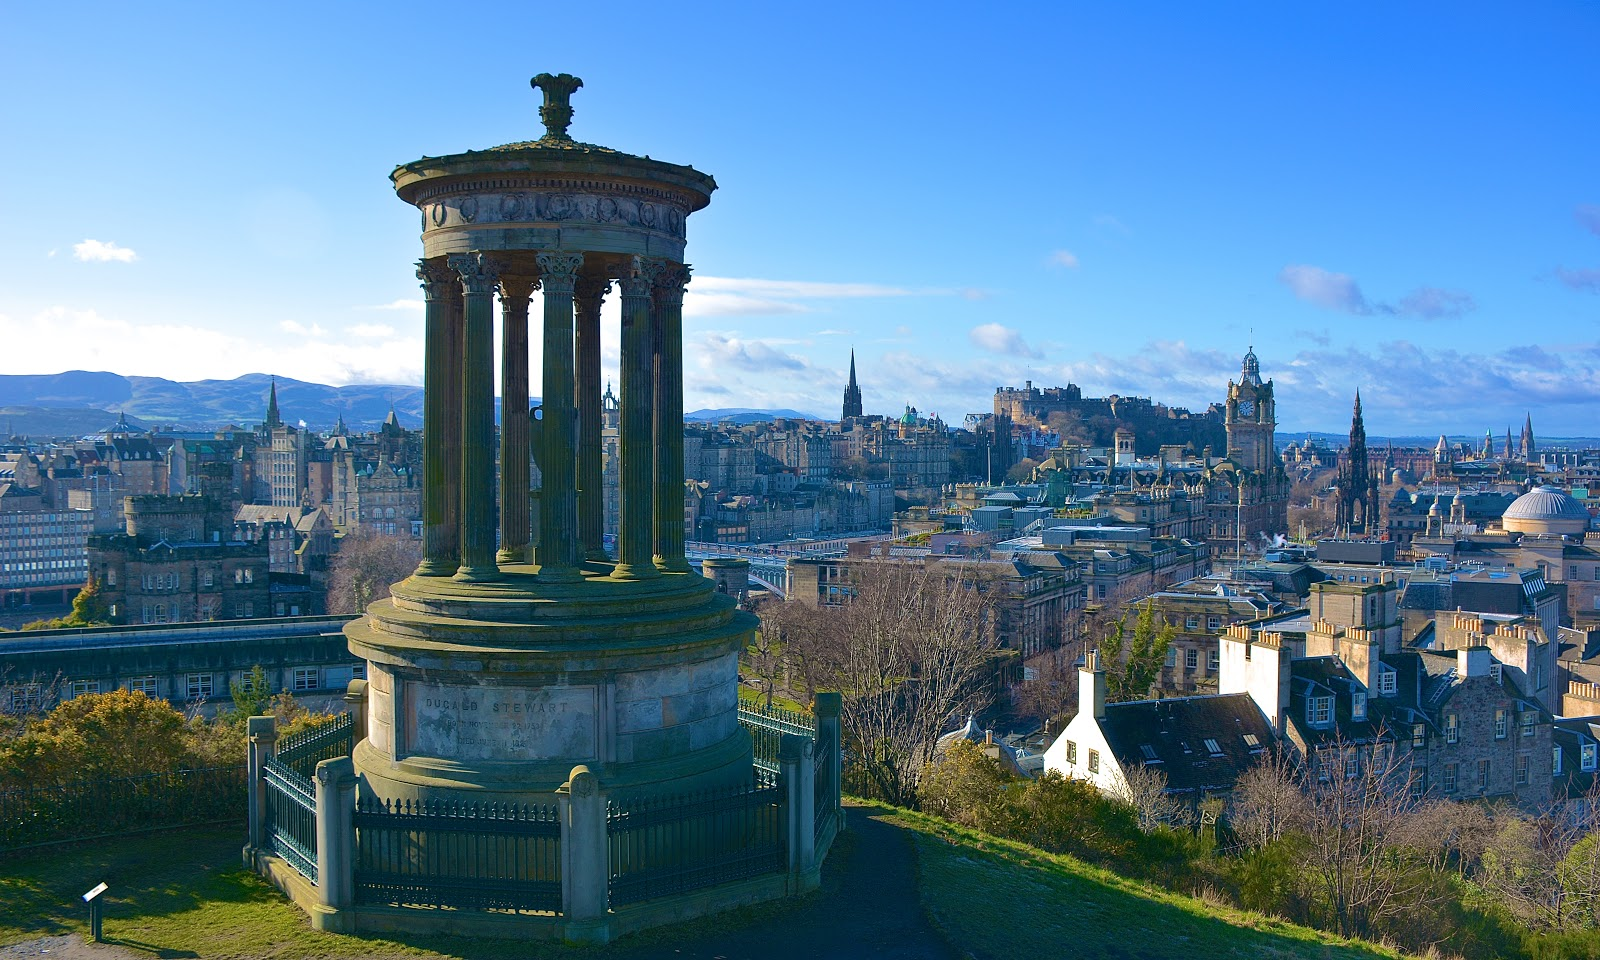 Dugald Stewart Monument and the Old Town of Edinburgh